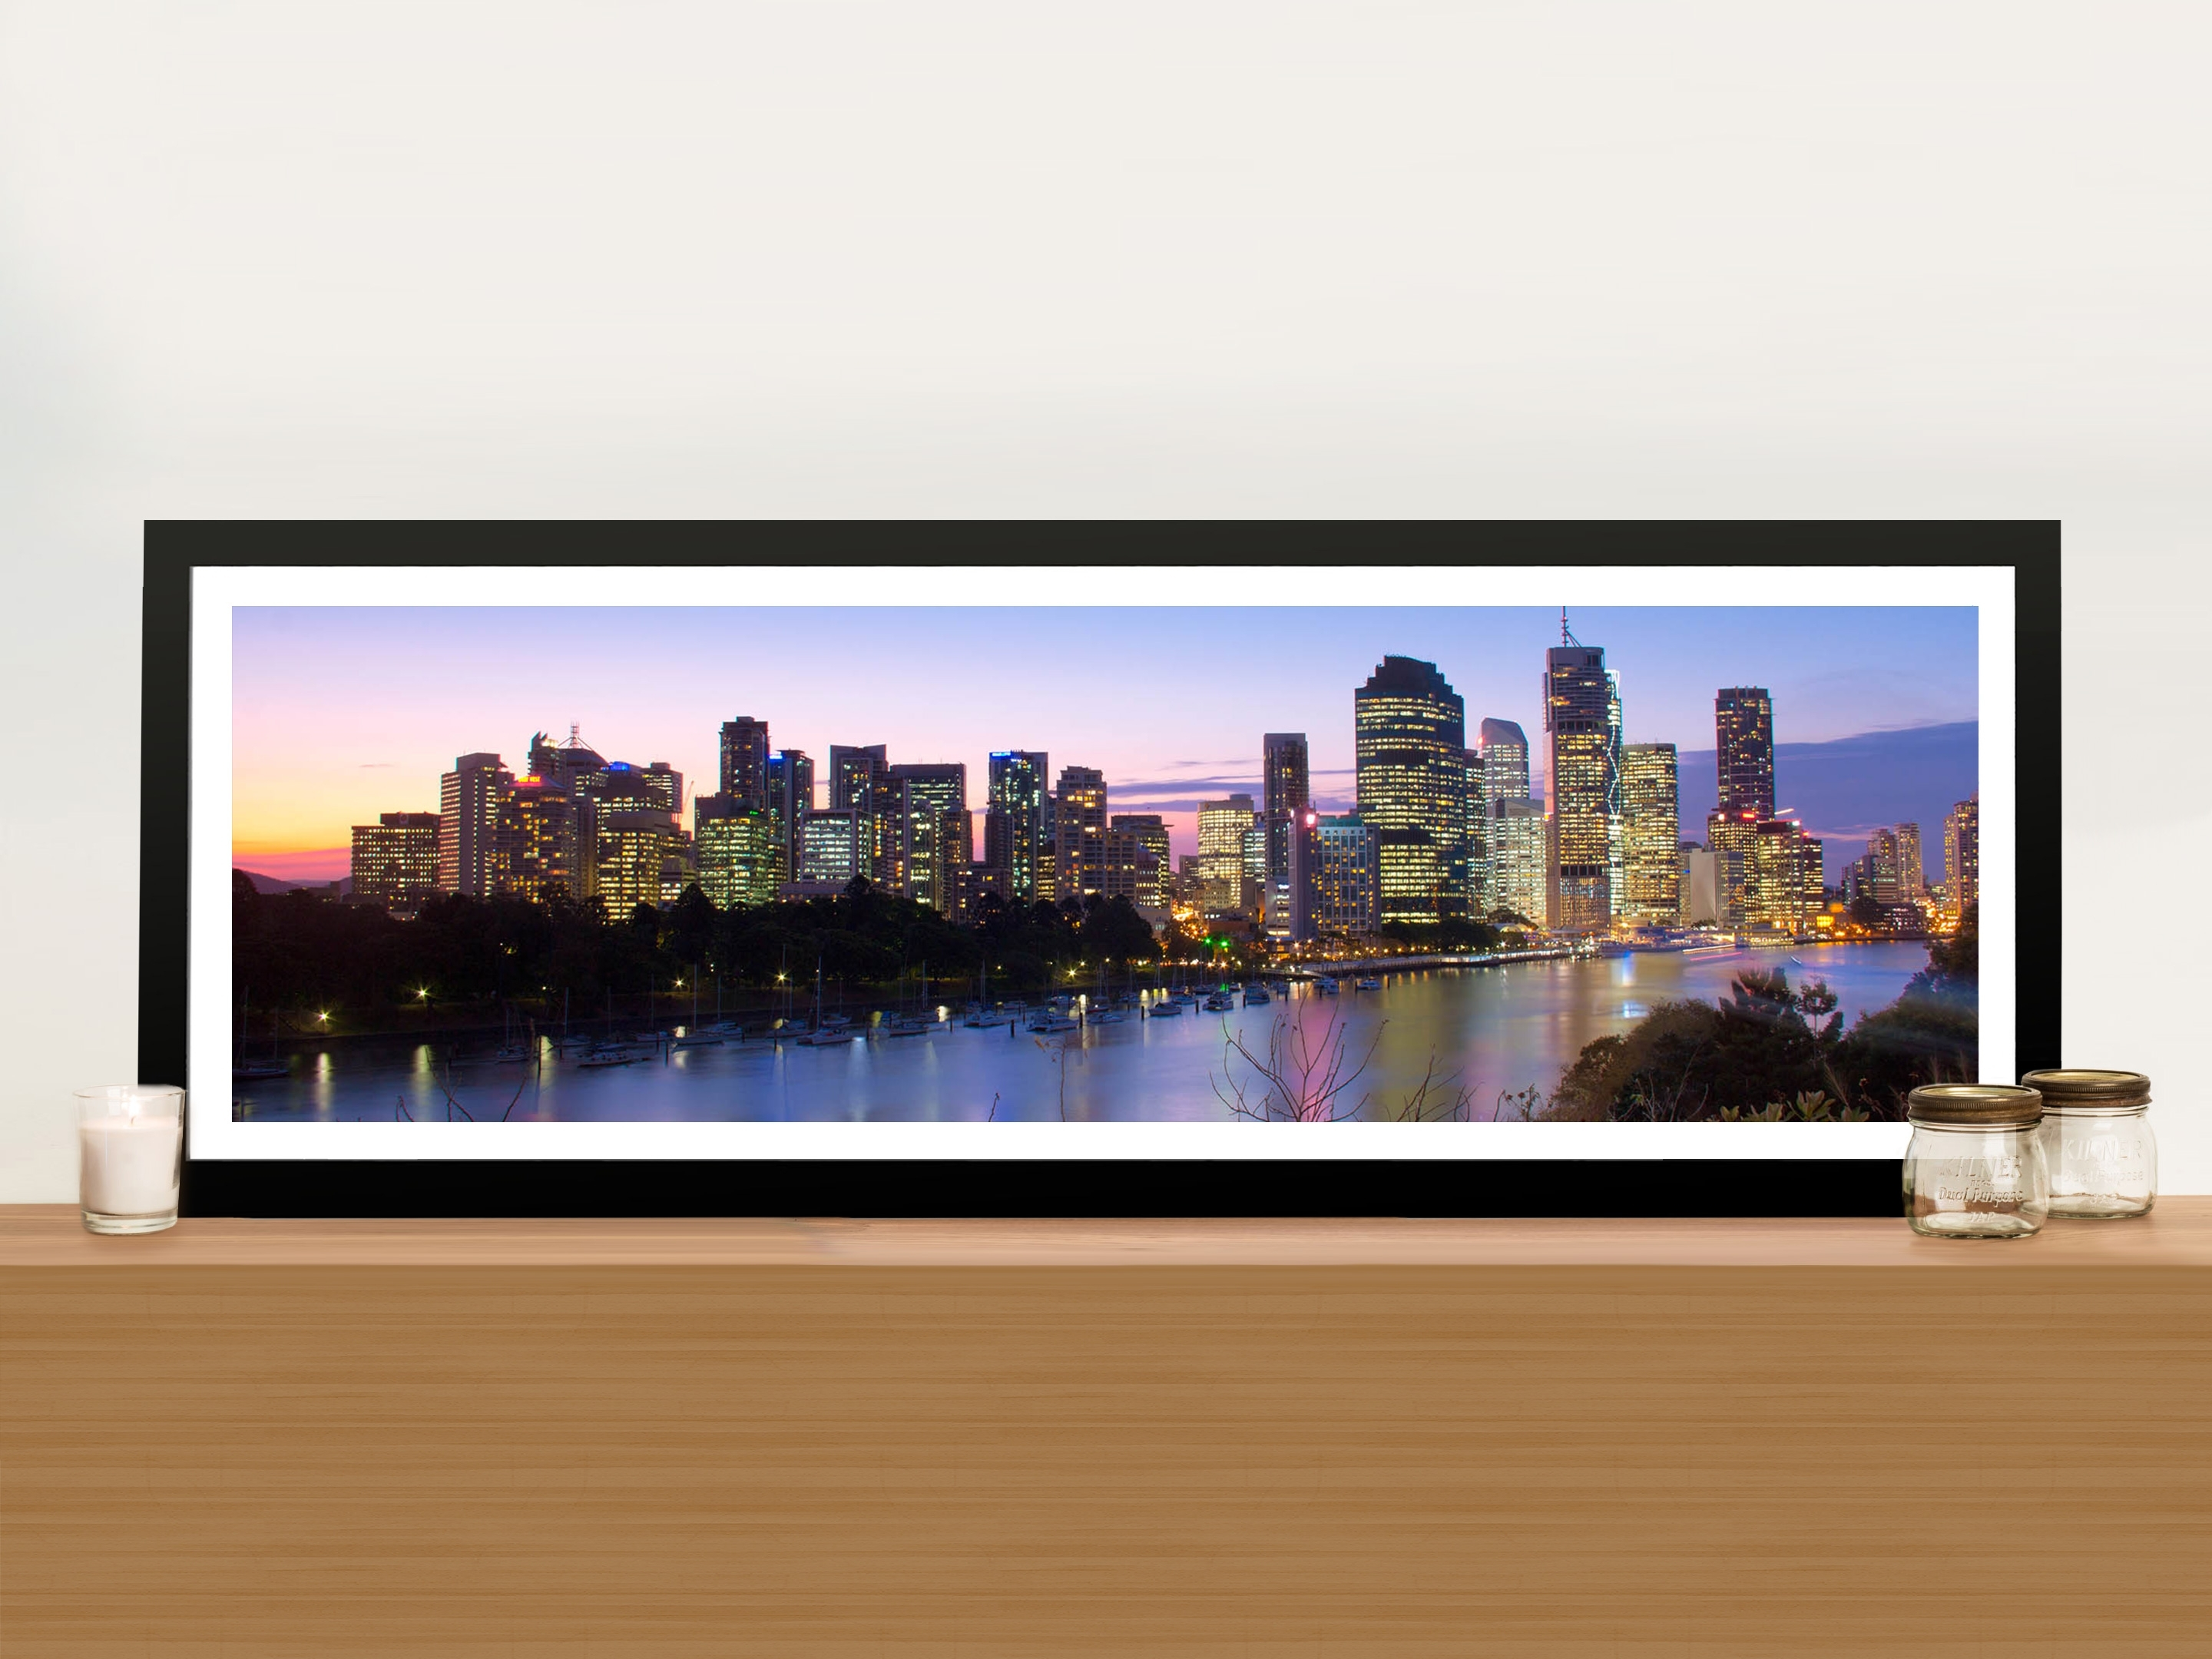 Brisbane Skyline In Panoramic View Picture Art Print On Canvas Inside Panoramic Wall Art (View 5 of 20)